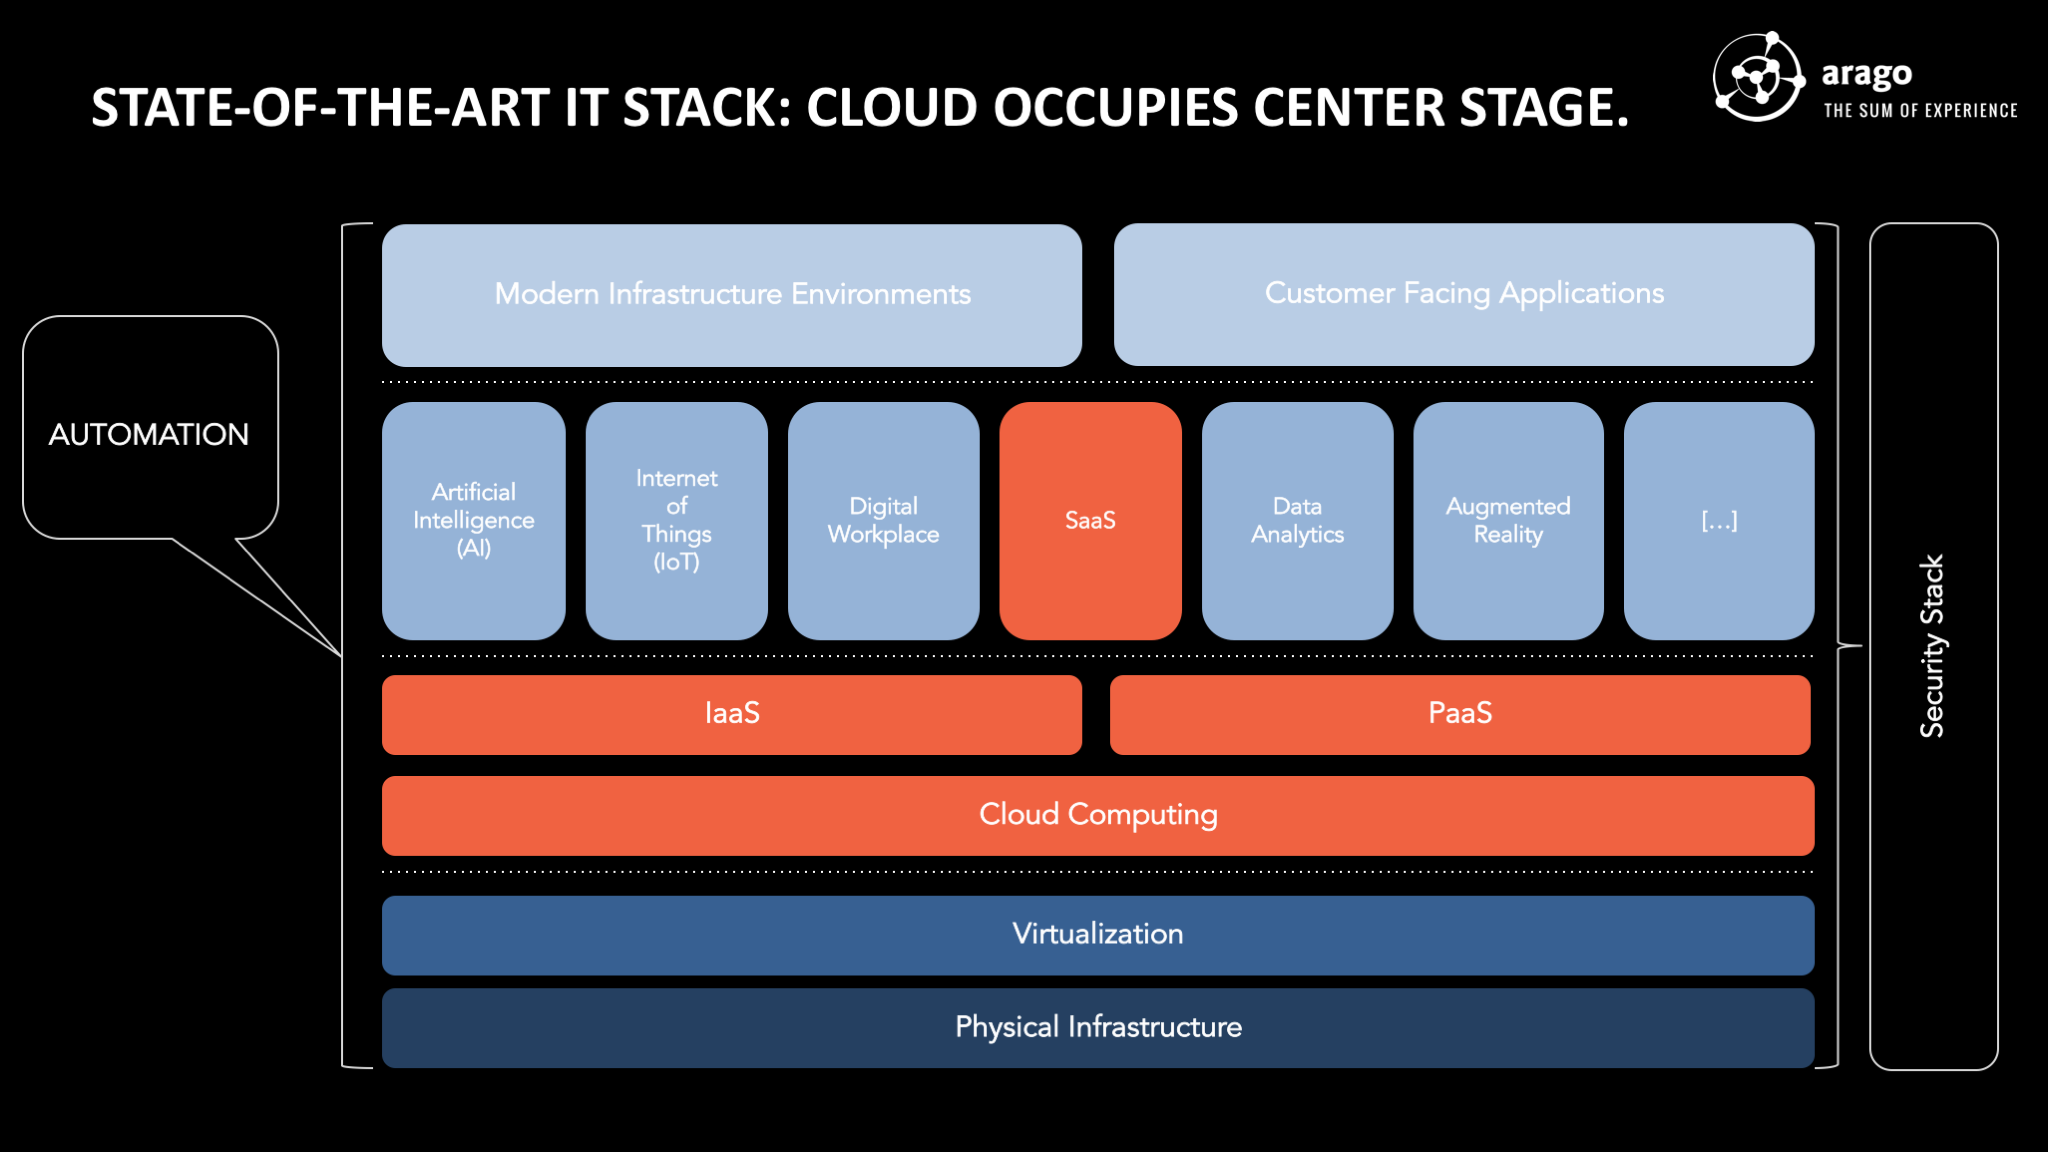 Figure: State-Of-The-Art IT Stack: Cloud Occupies Center Stage.